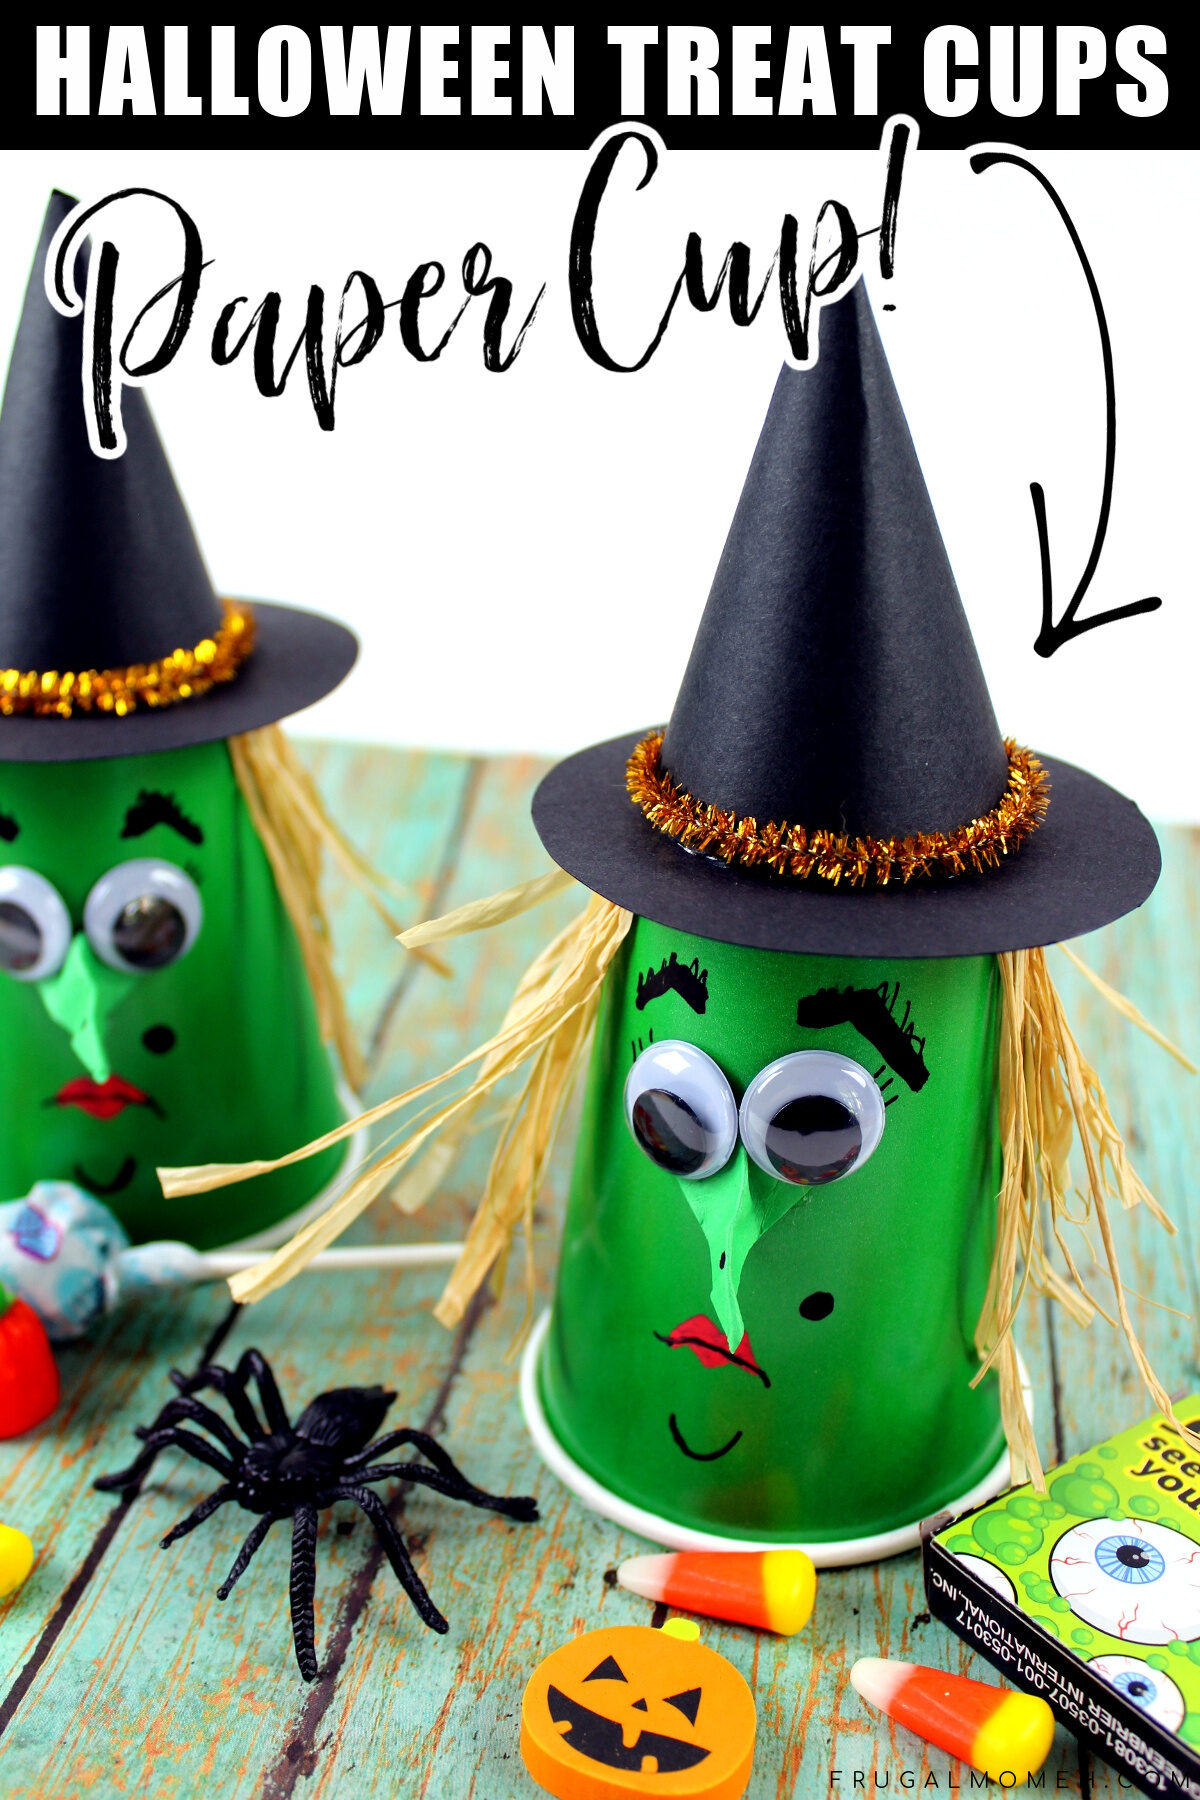 This Witch Halloween Treat Cups kids craft is a great way to celebrate the holiday – they are a fun little Halloween craft kids will enjoy being creative with.